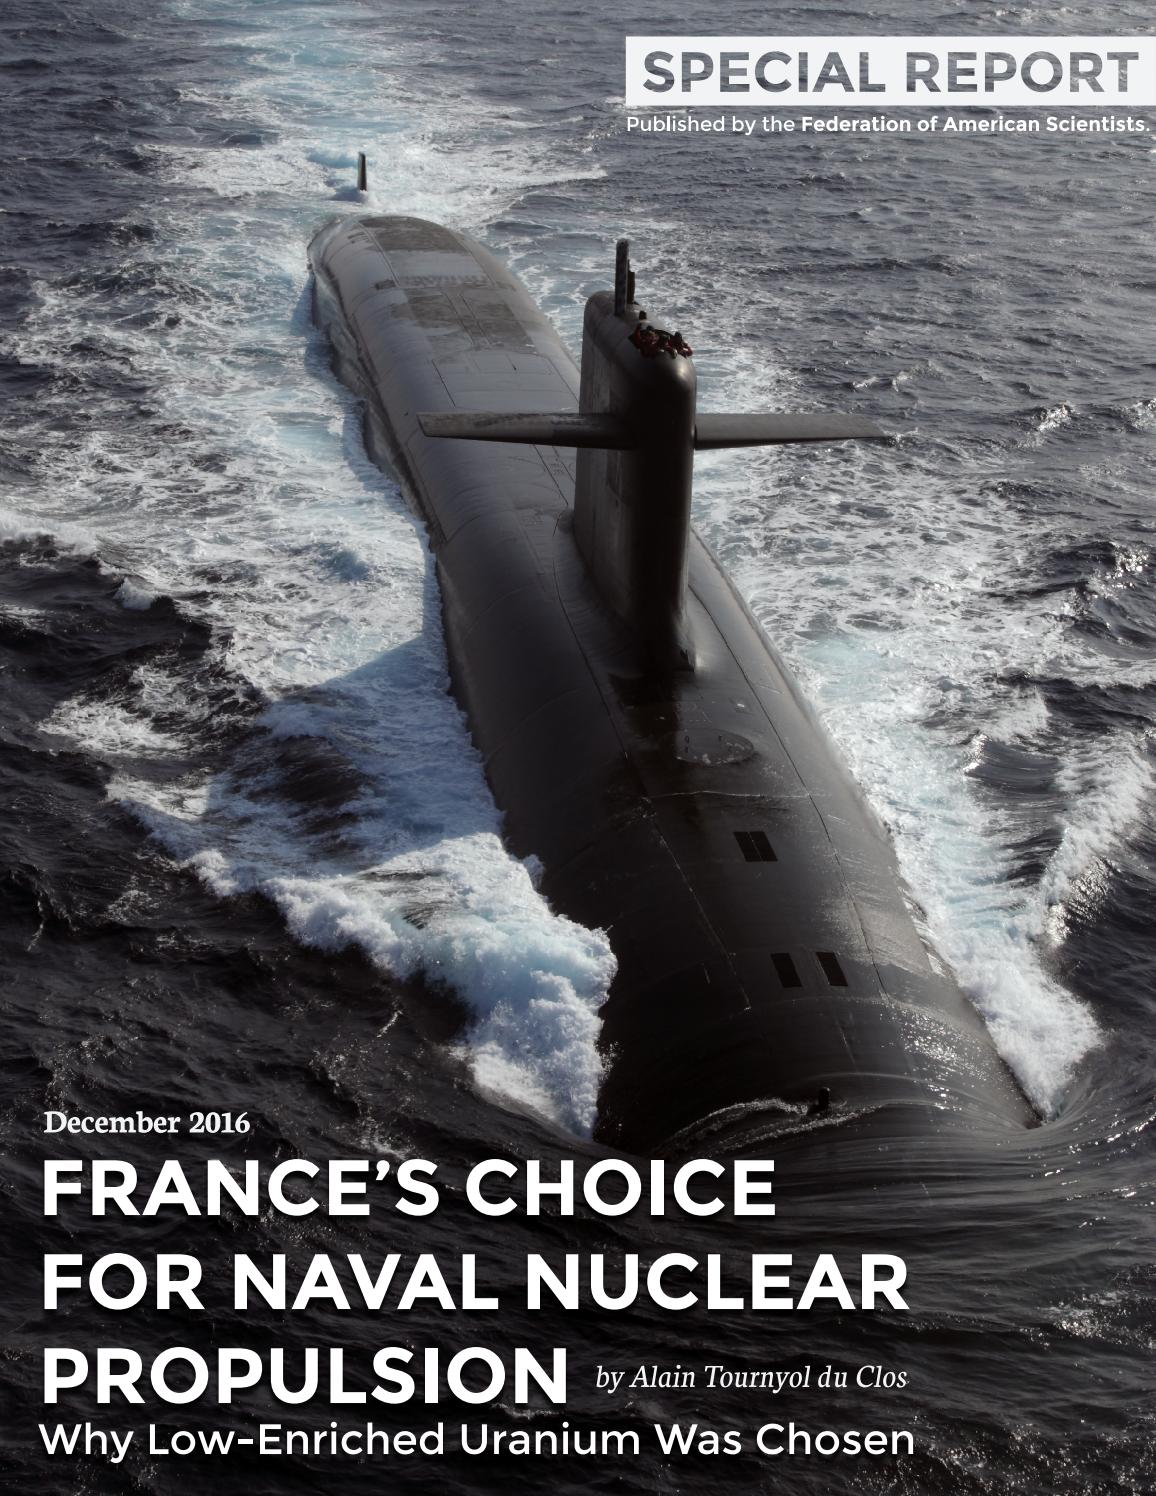 France's Choice for Naval Nuclear Propulsion: Why Low